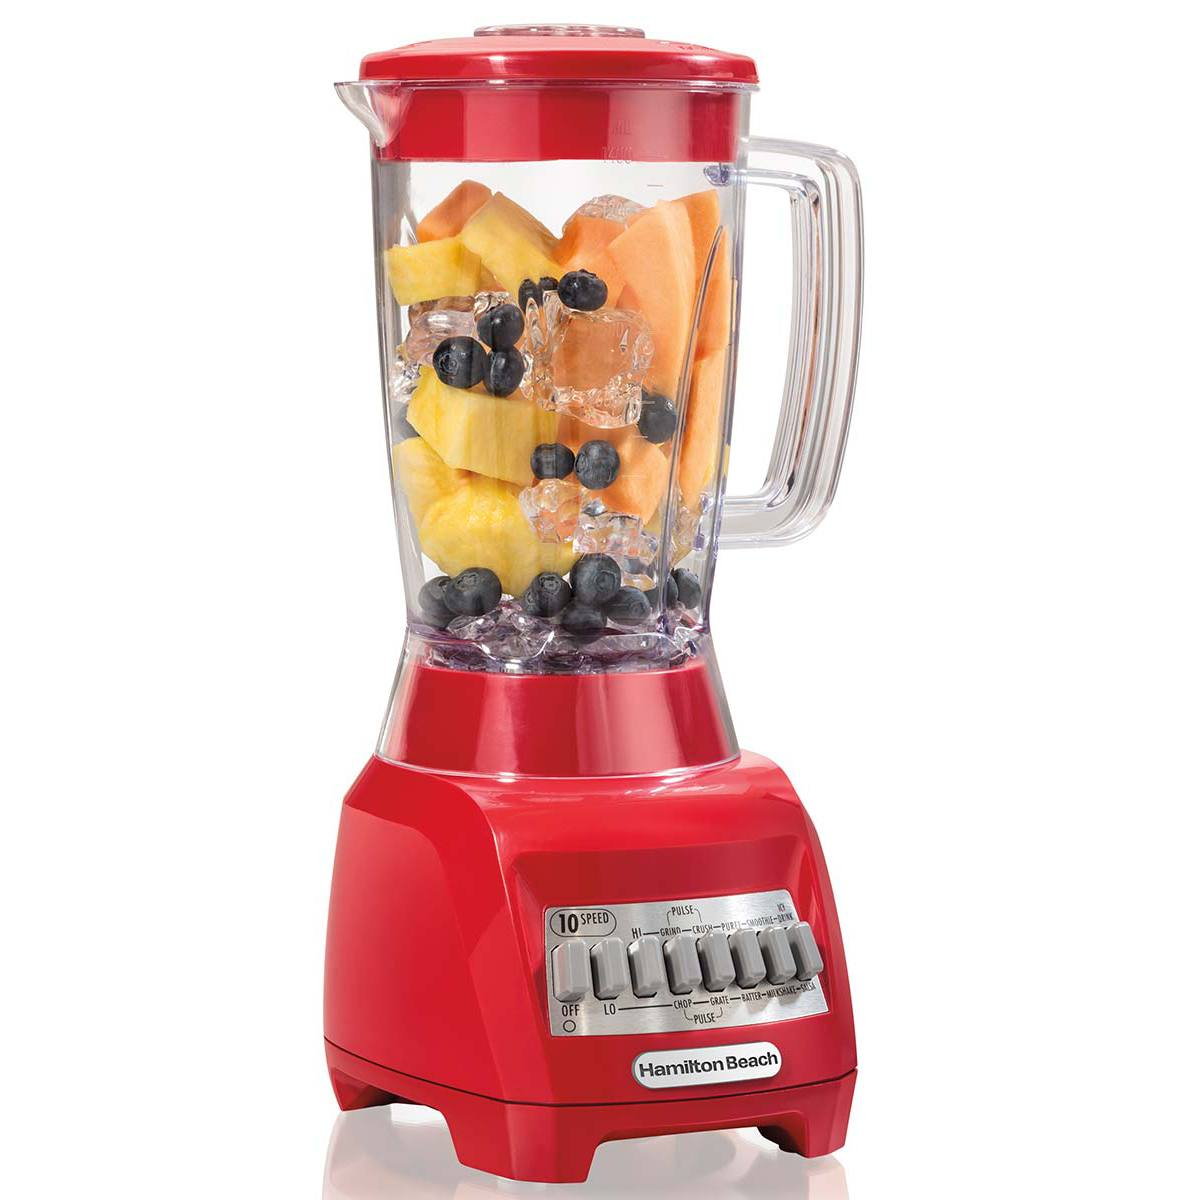 10 Speed Blender (50129)